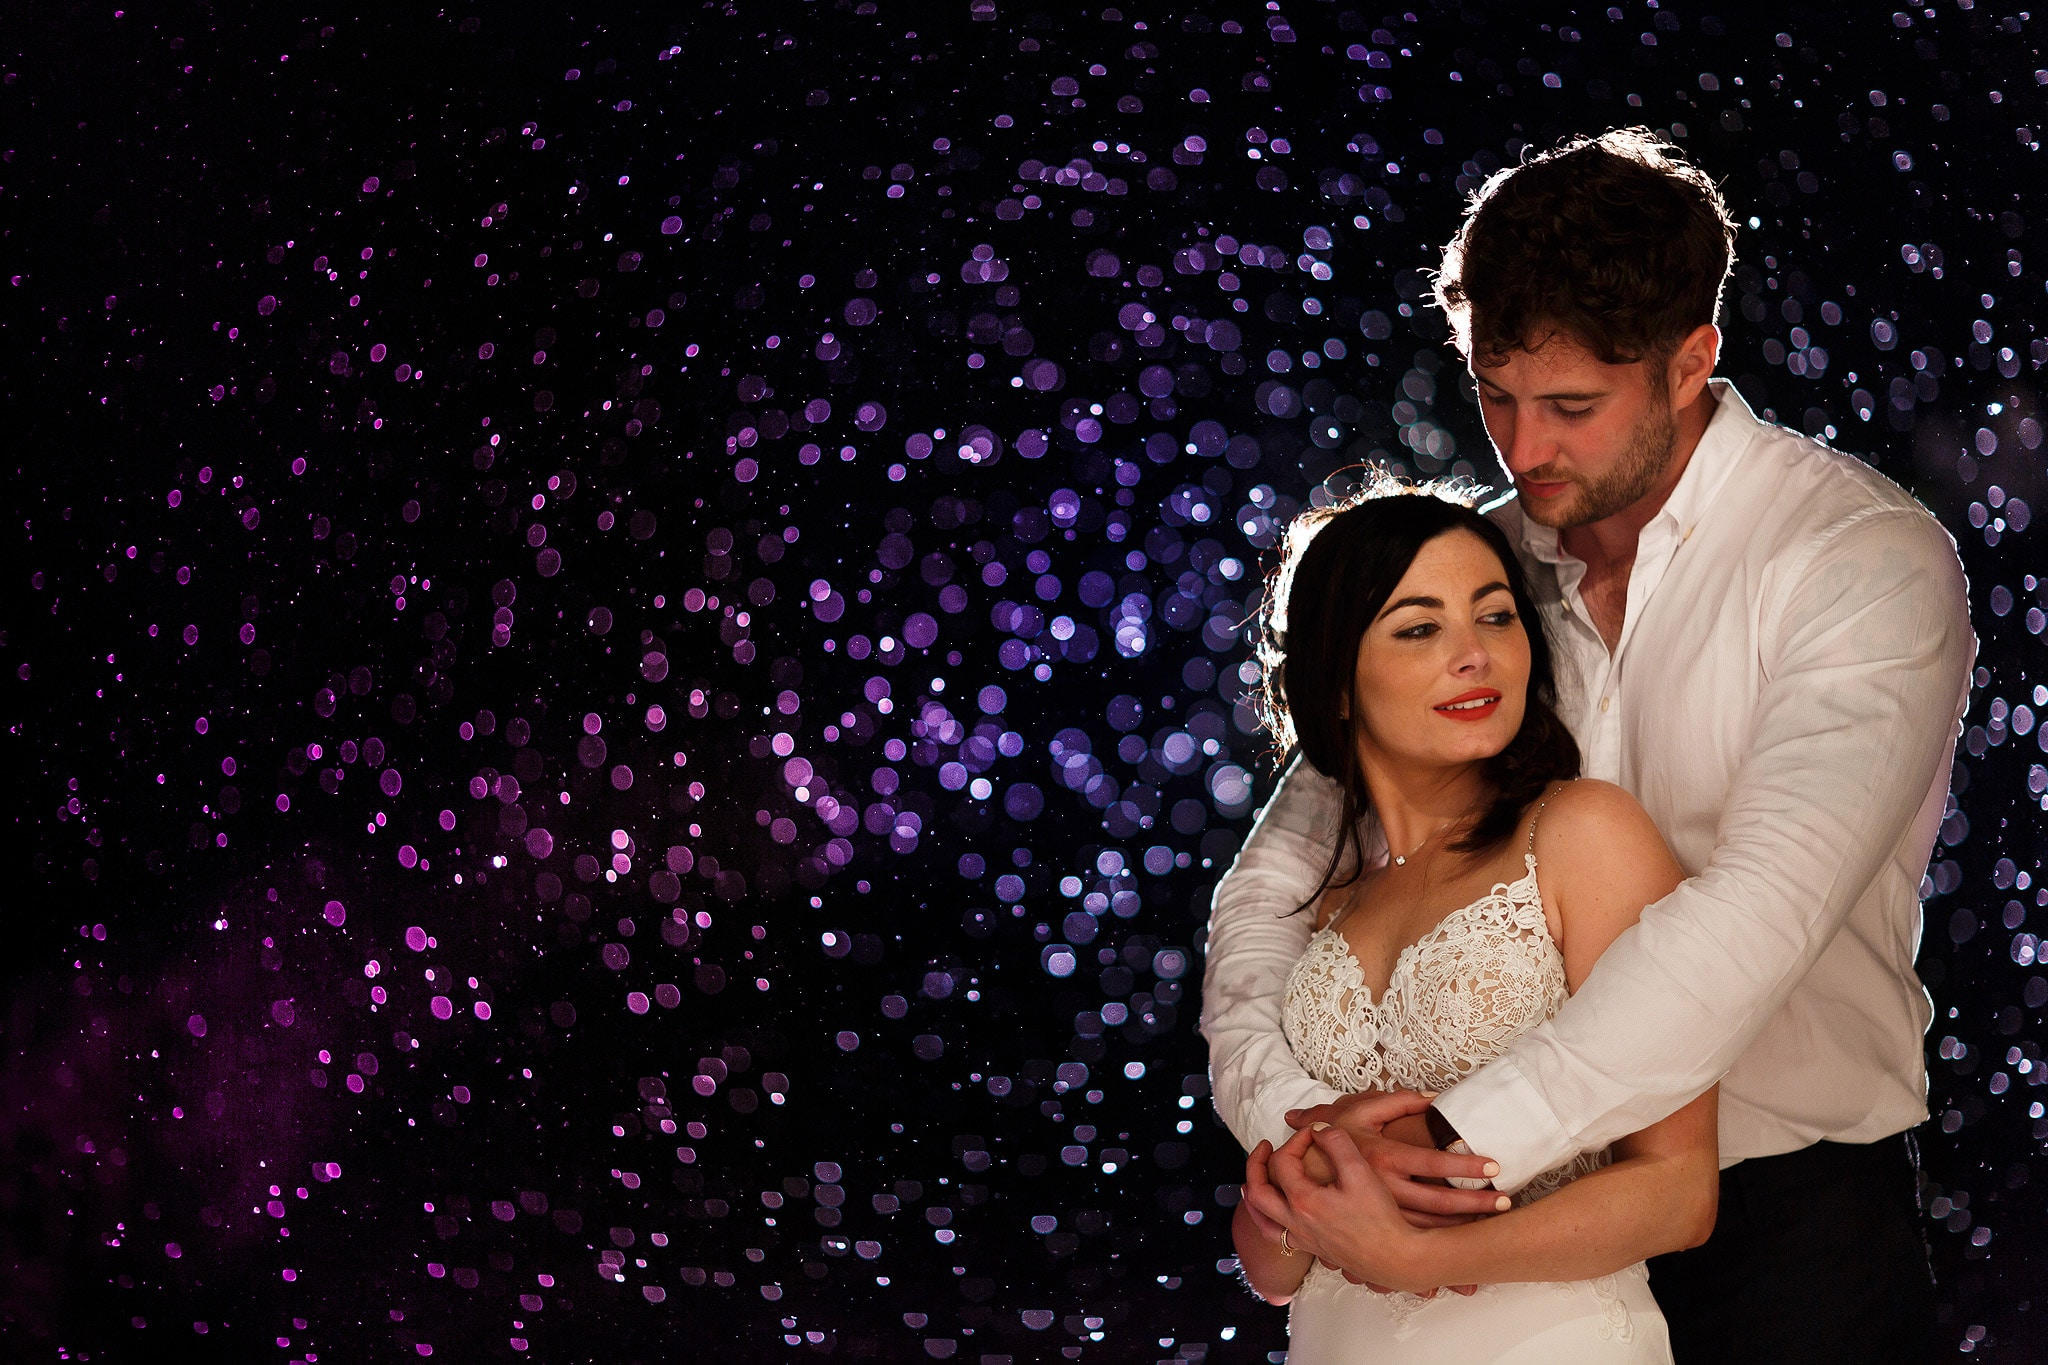 Magical wedding portrait of bride and groom taken in the rain. Lit with off camera flash the rain sparkles.